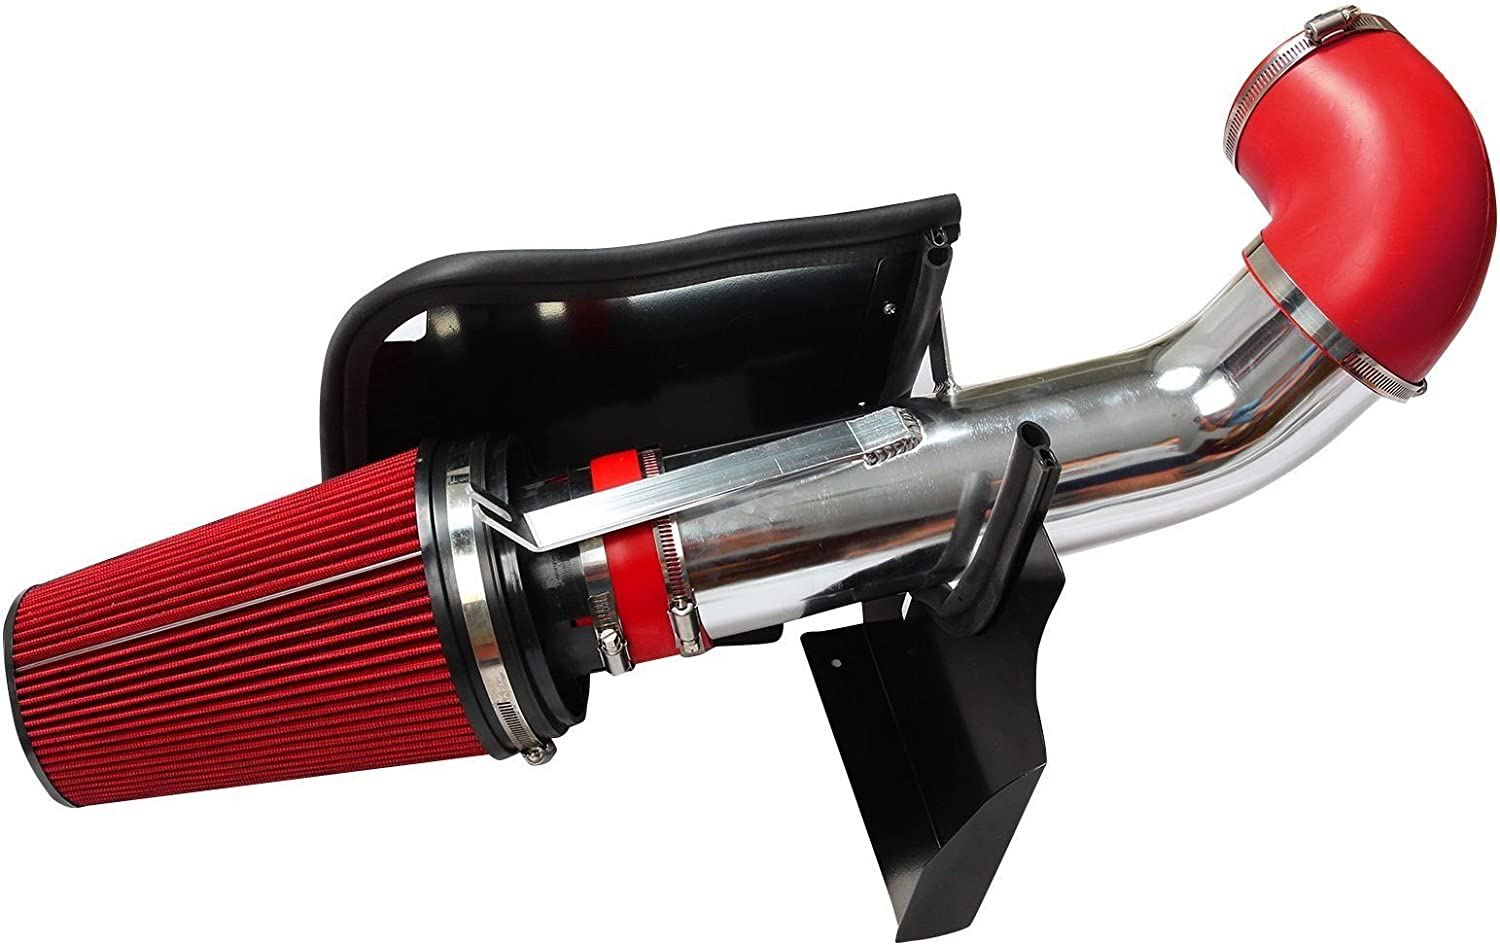 Red BLACKHORSE-RACING 4 Cold Air Intake System Kit Heat Shield for GMC Chevy Chevrolet 1999 2000 2001 2002 2003 2004 2005 2006 V8 4.8L//5.3L//6.0L